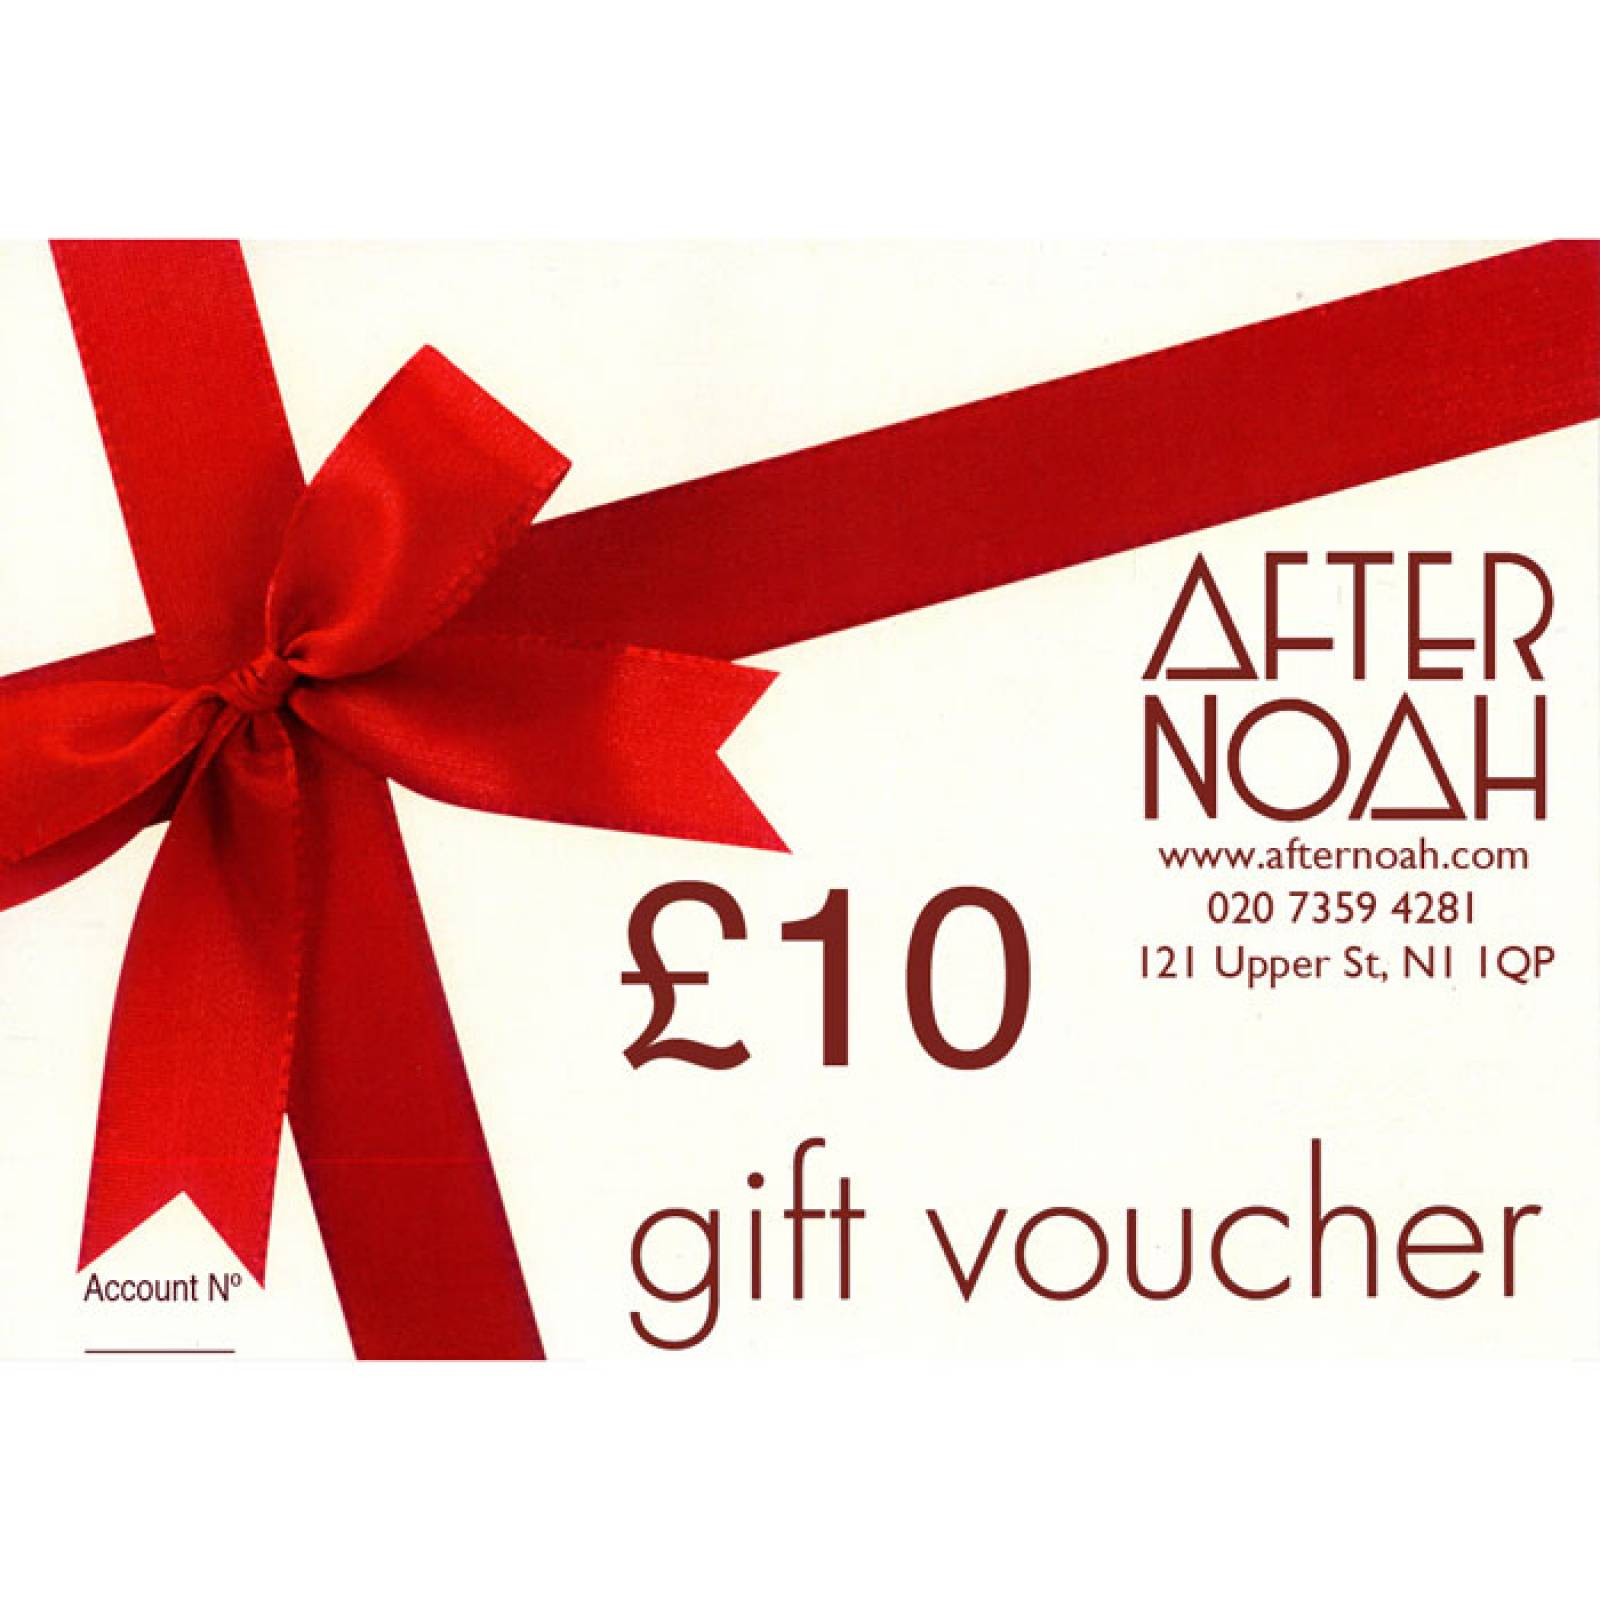 After Noah Gift Voucher thumbnails